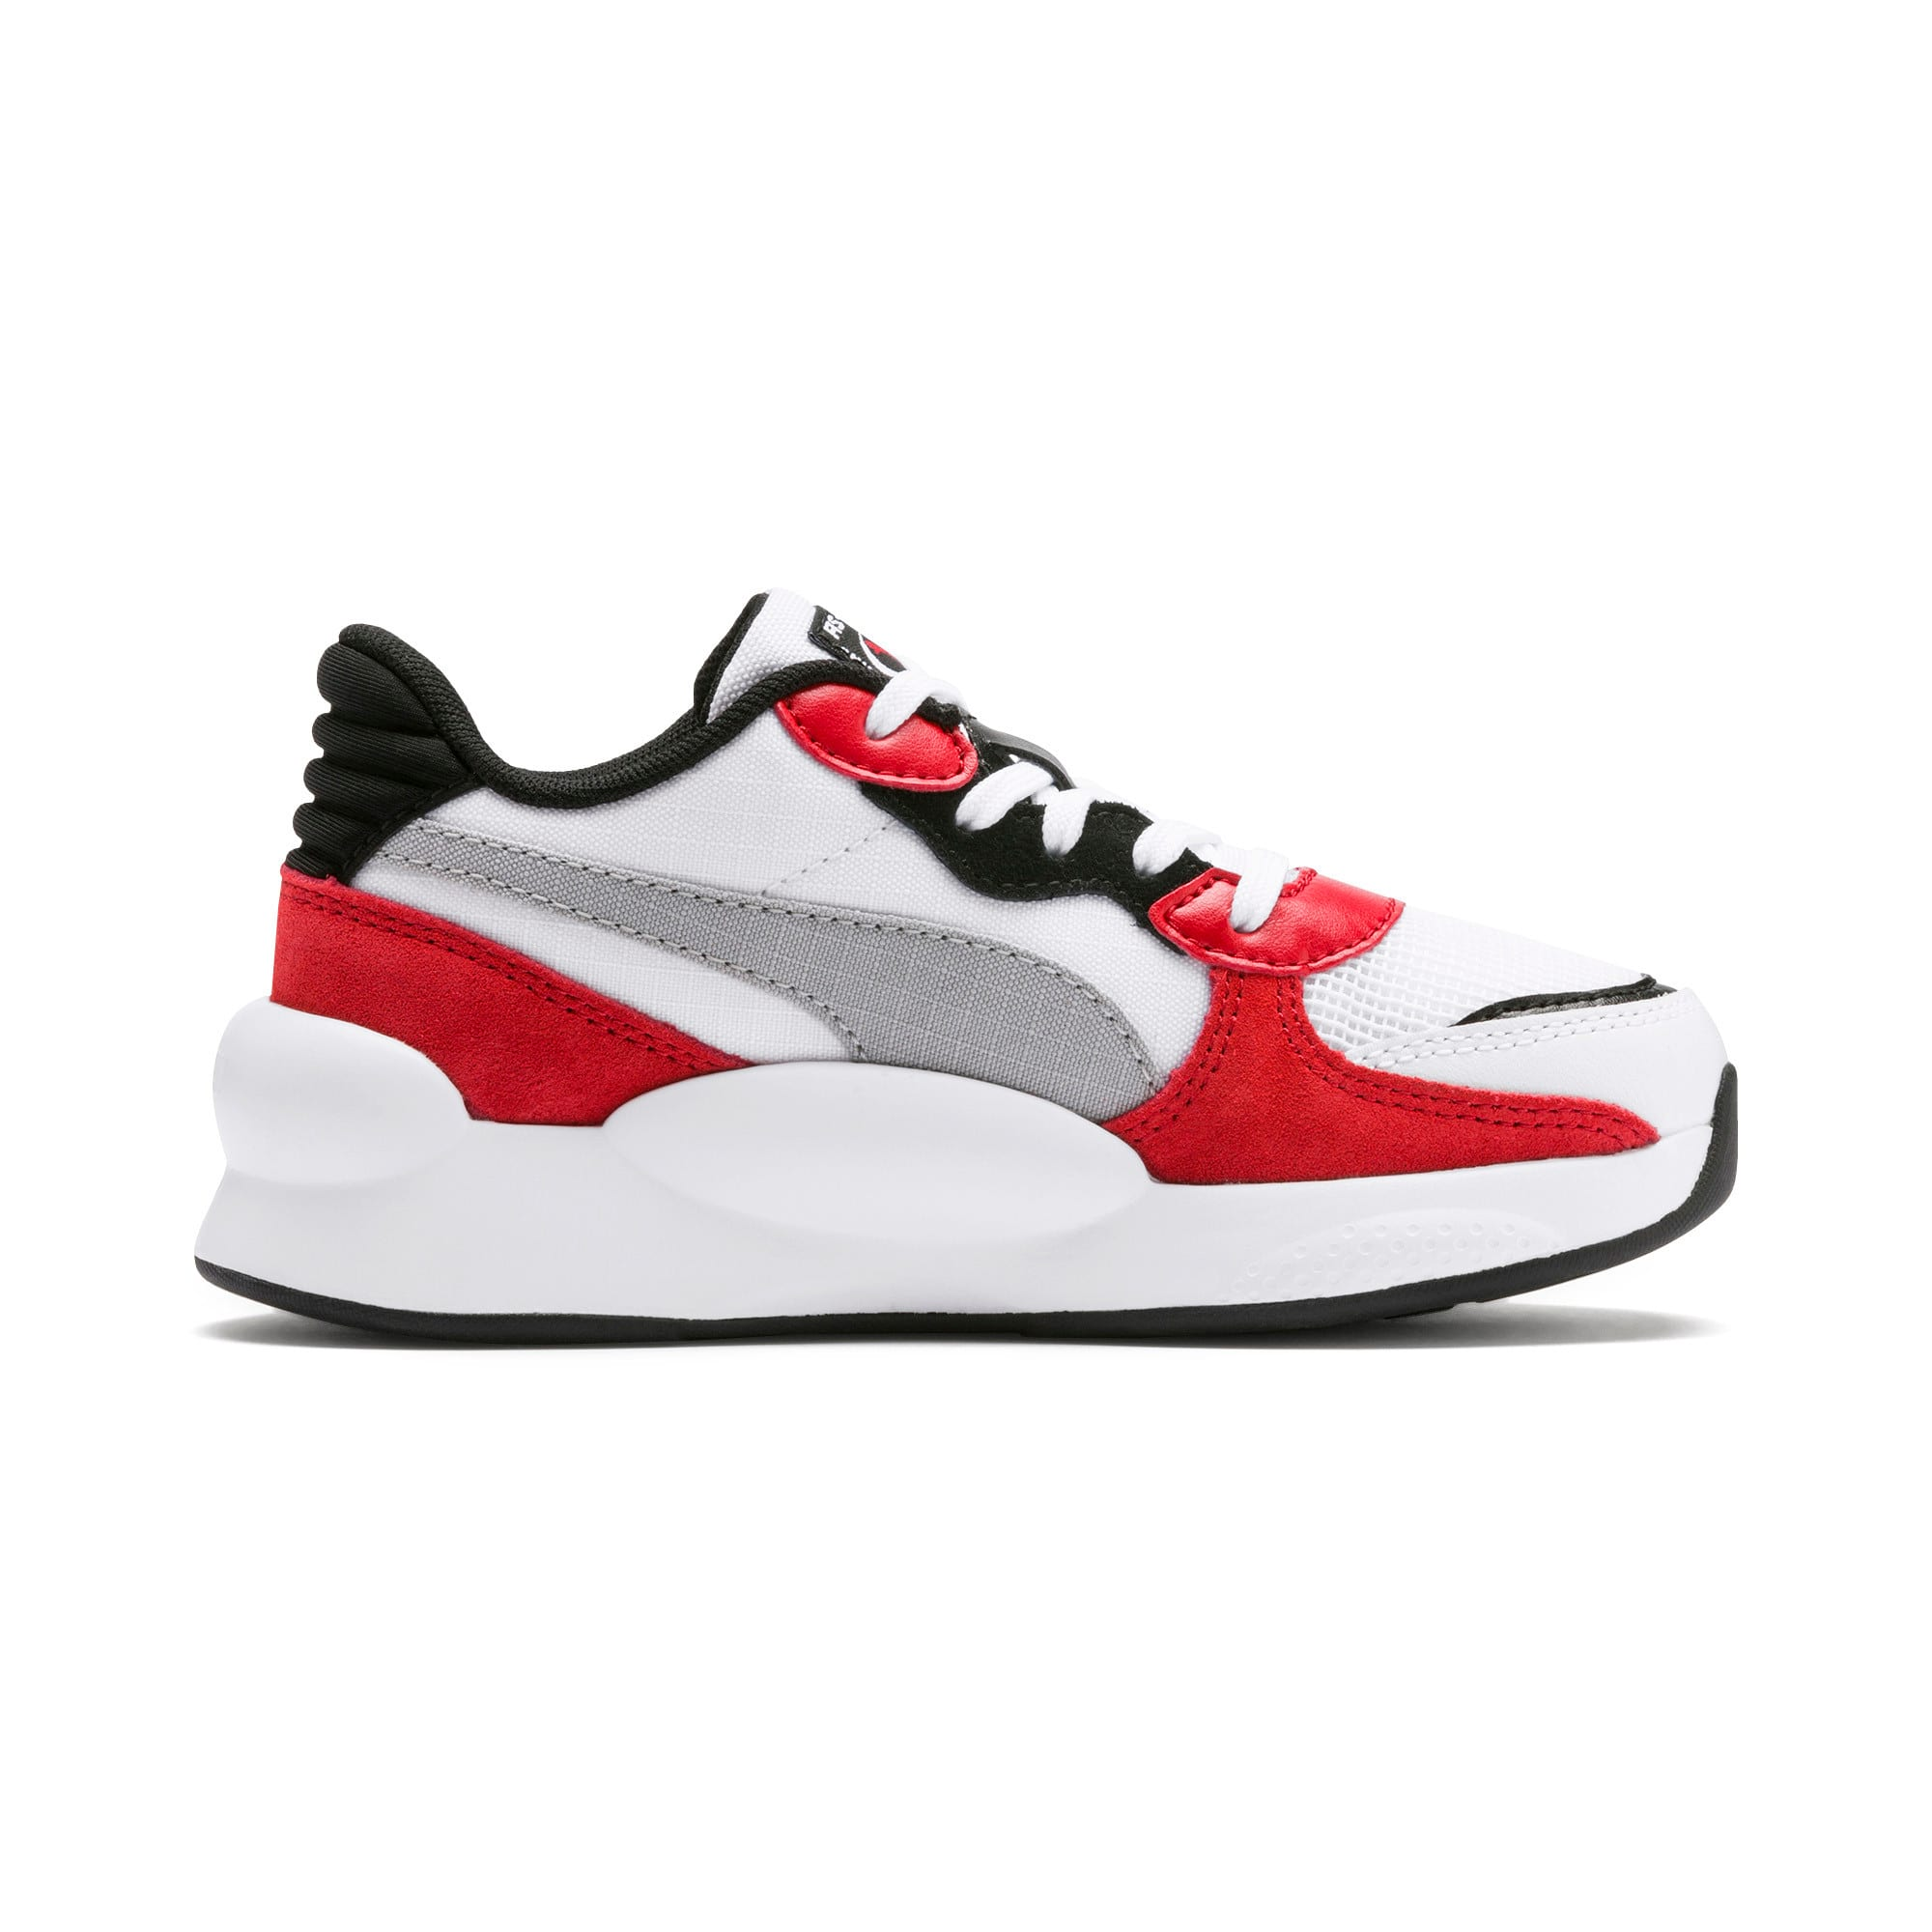 Thumbnail 5 of RS 9.8 Space Little Kids' Shoes, Puma White-High Risk Red, medium